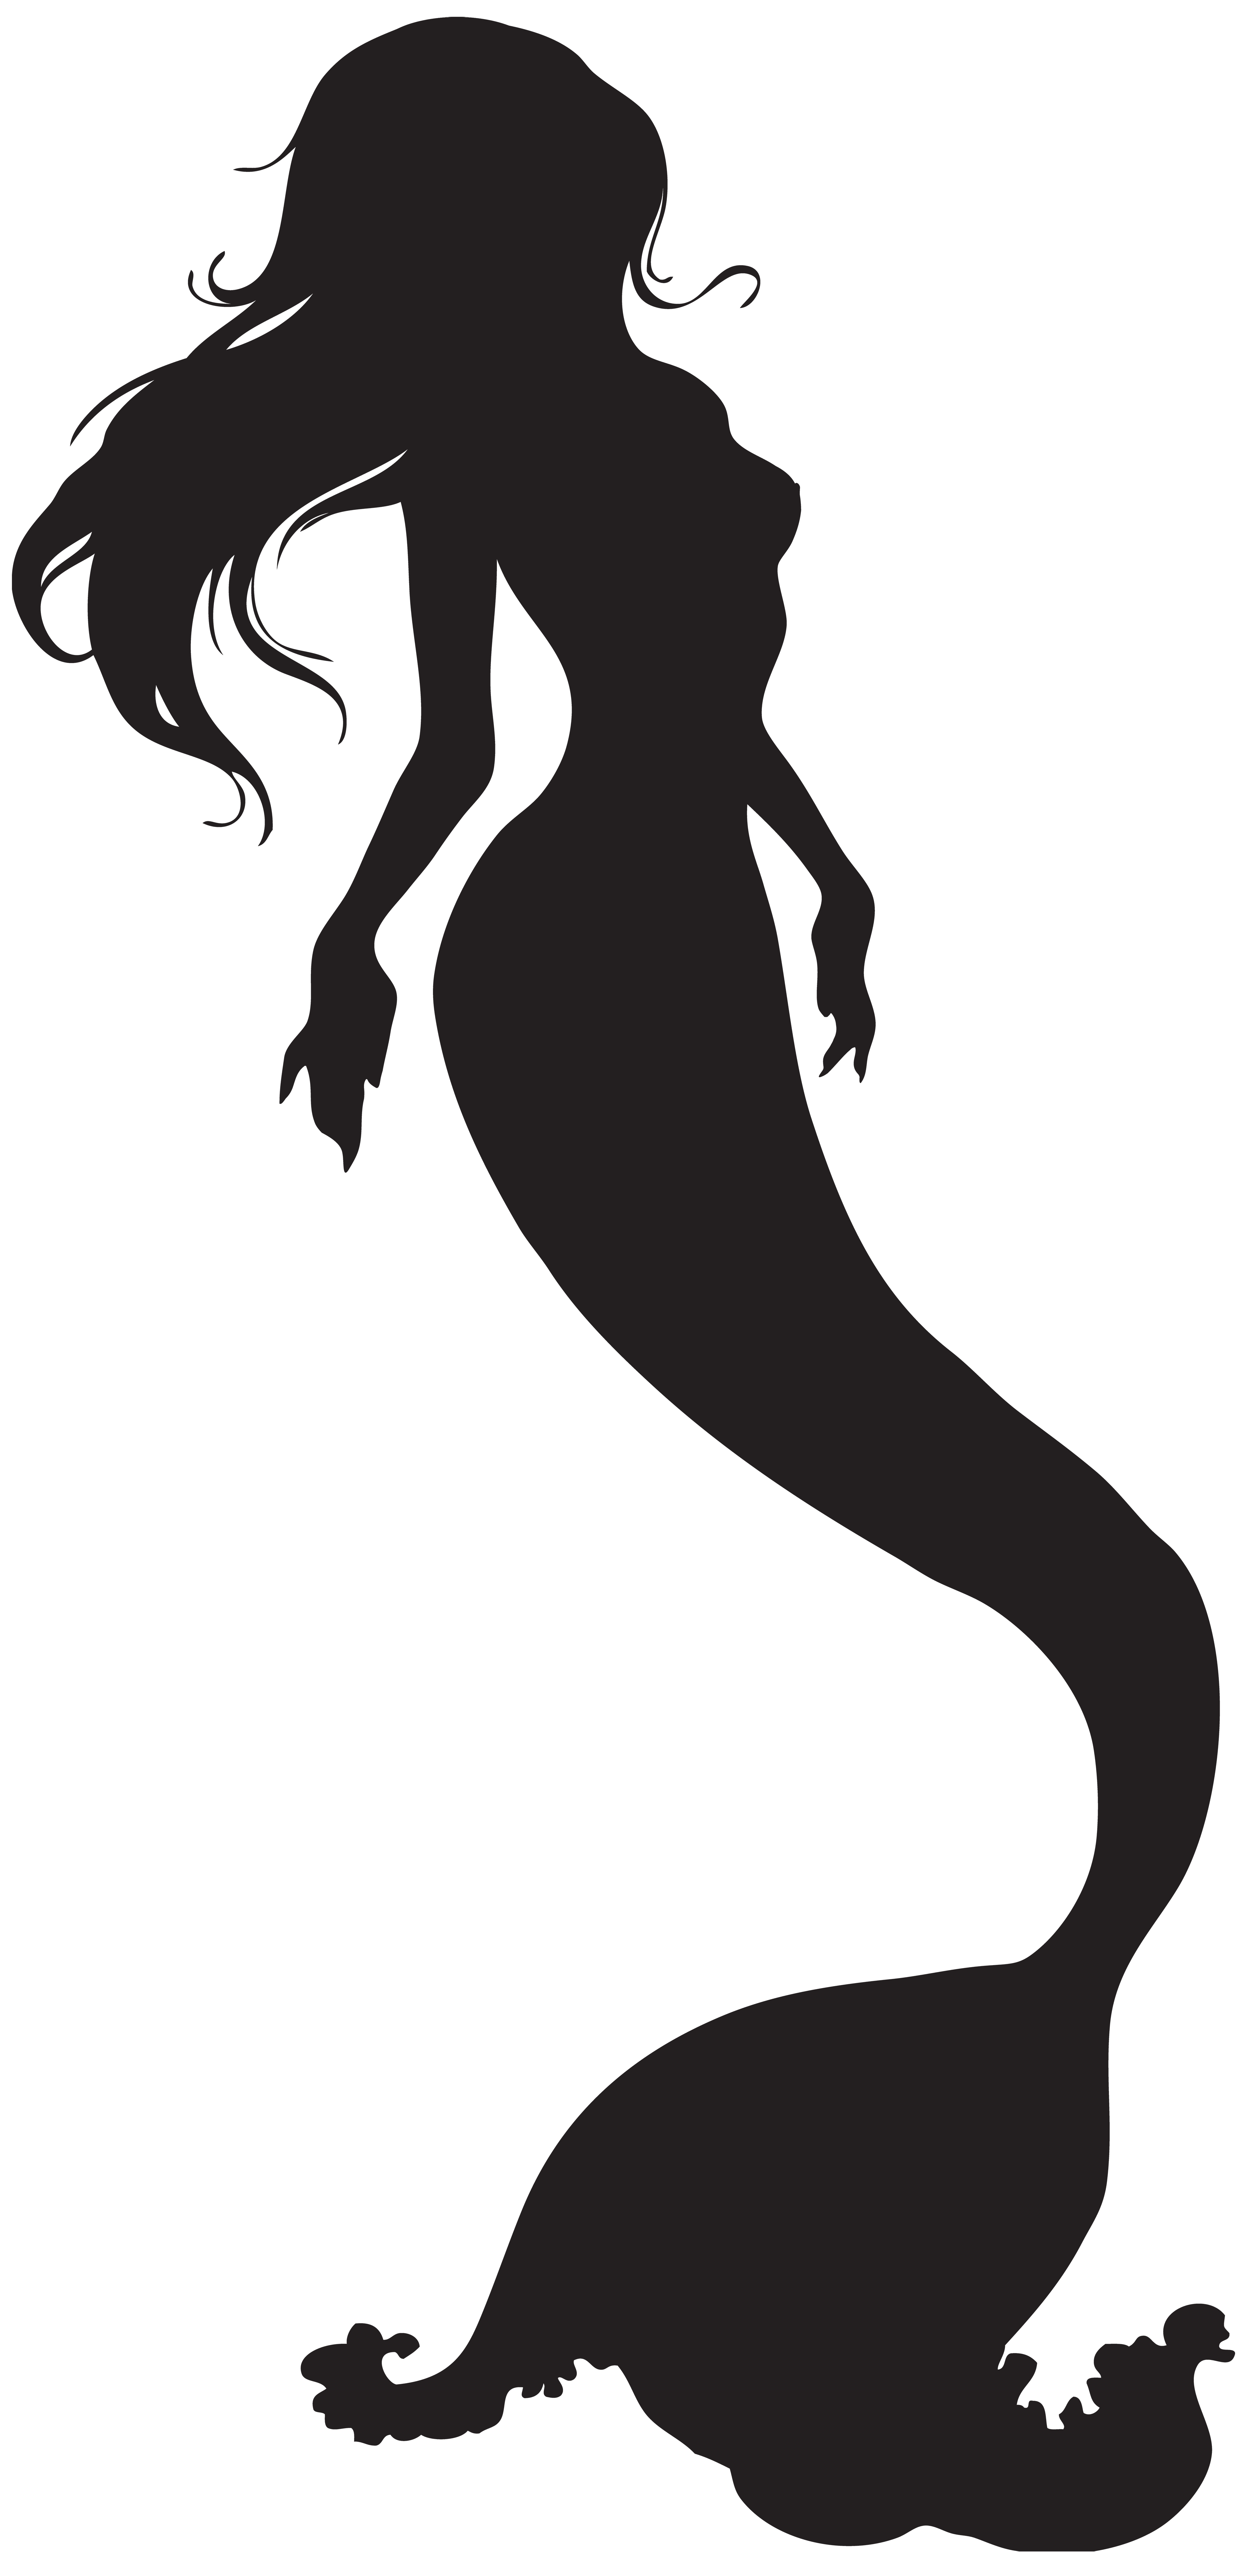 Silhouette png clip art. Picture clipart mermaid